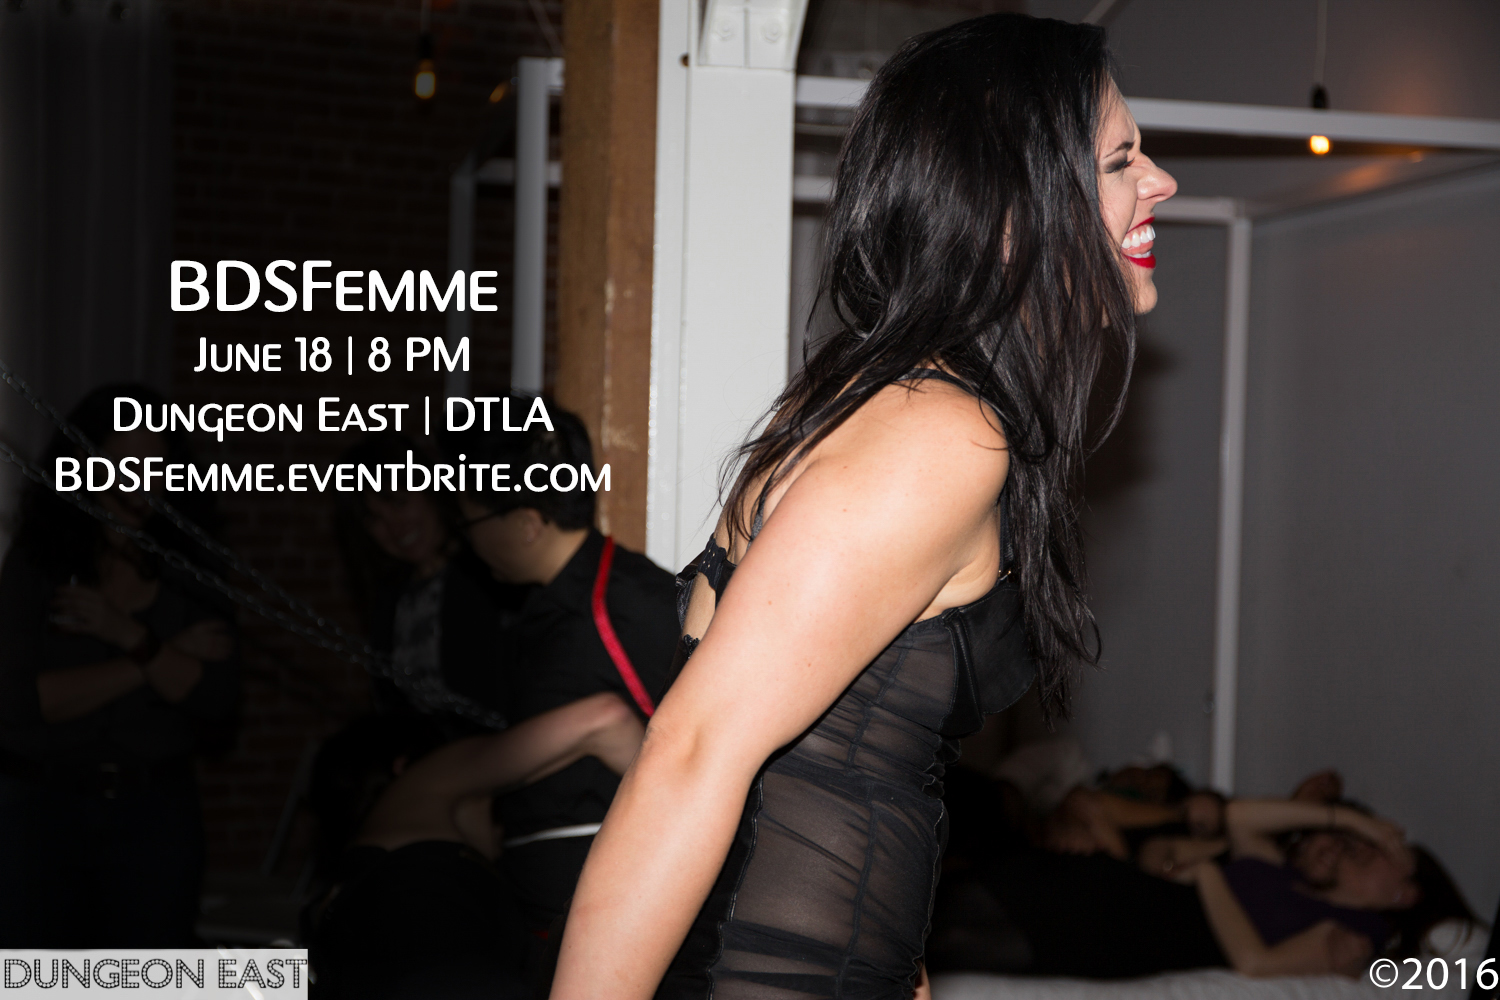 BDSFEMME – Saturday June 18th at Dungeon East